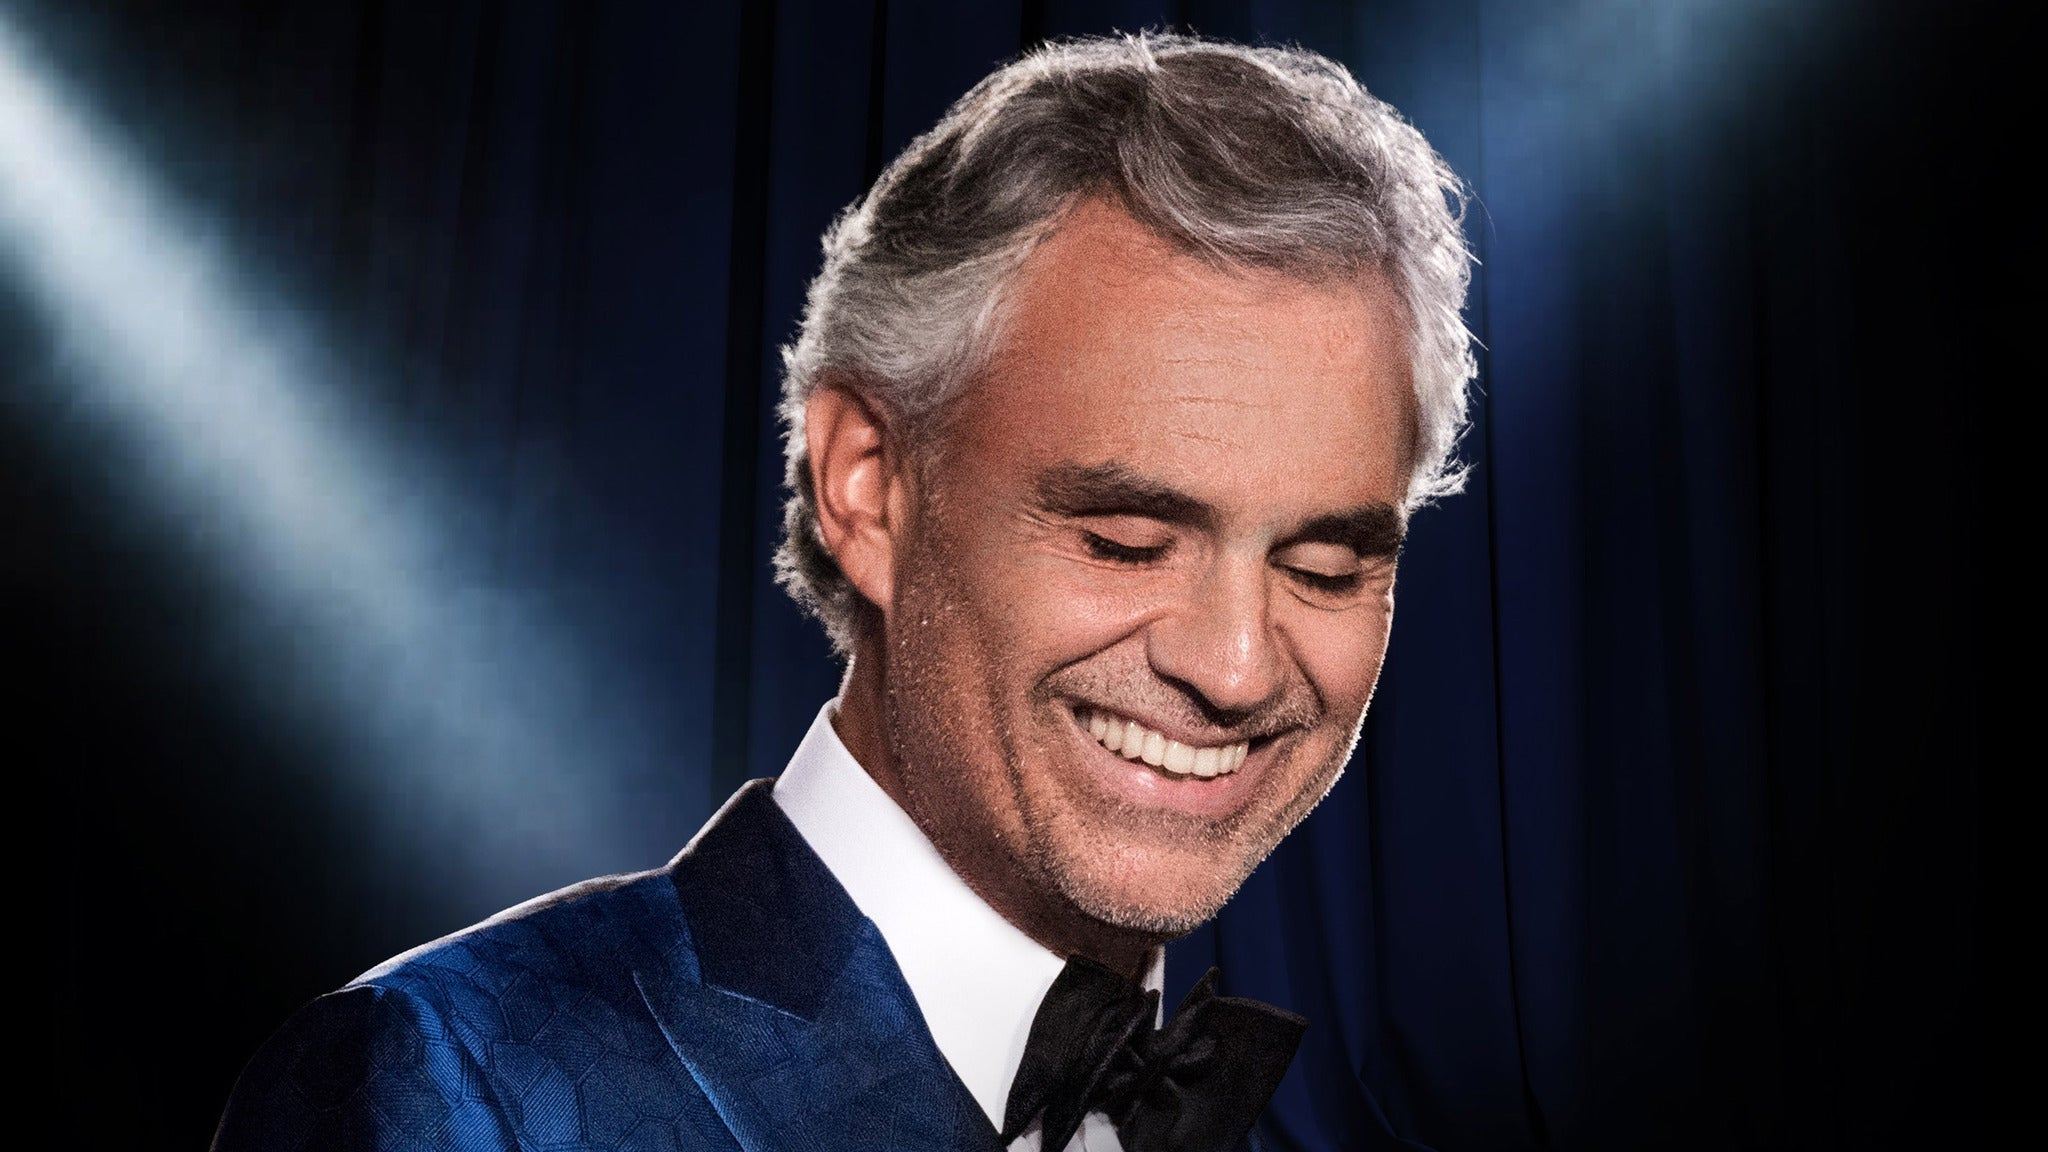 Andrea Bocelli at Valley View Casino Center - San Diego, CA 92110